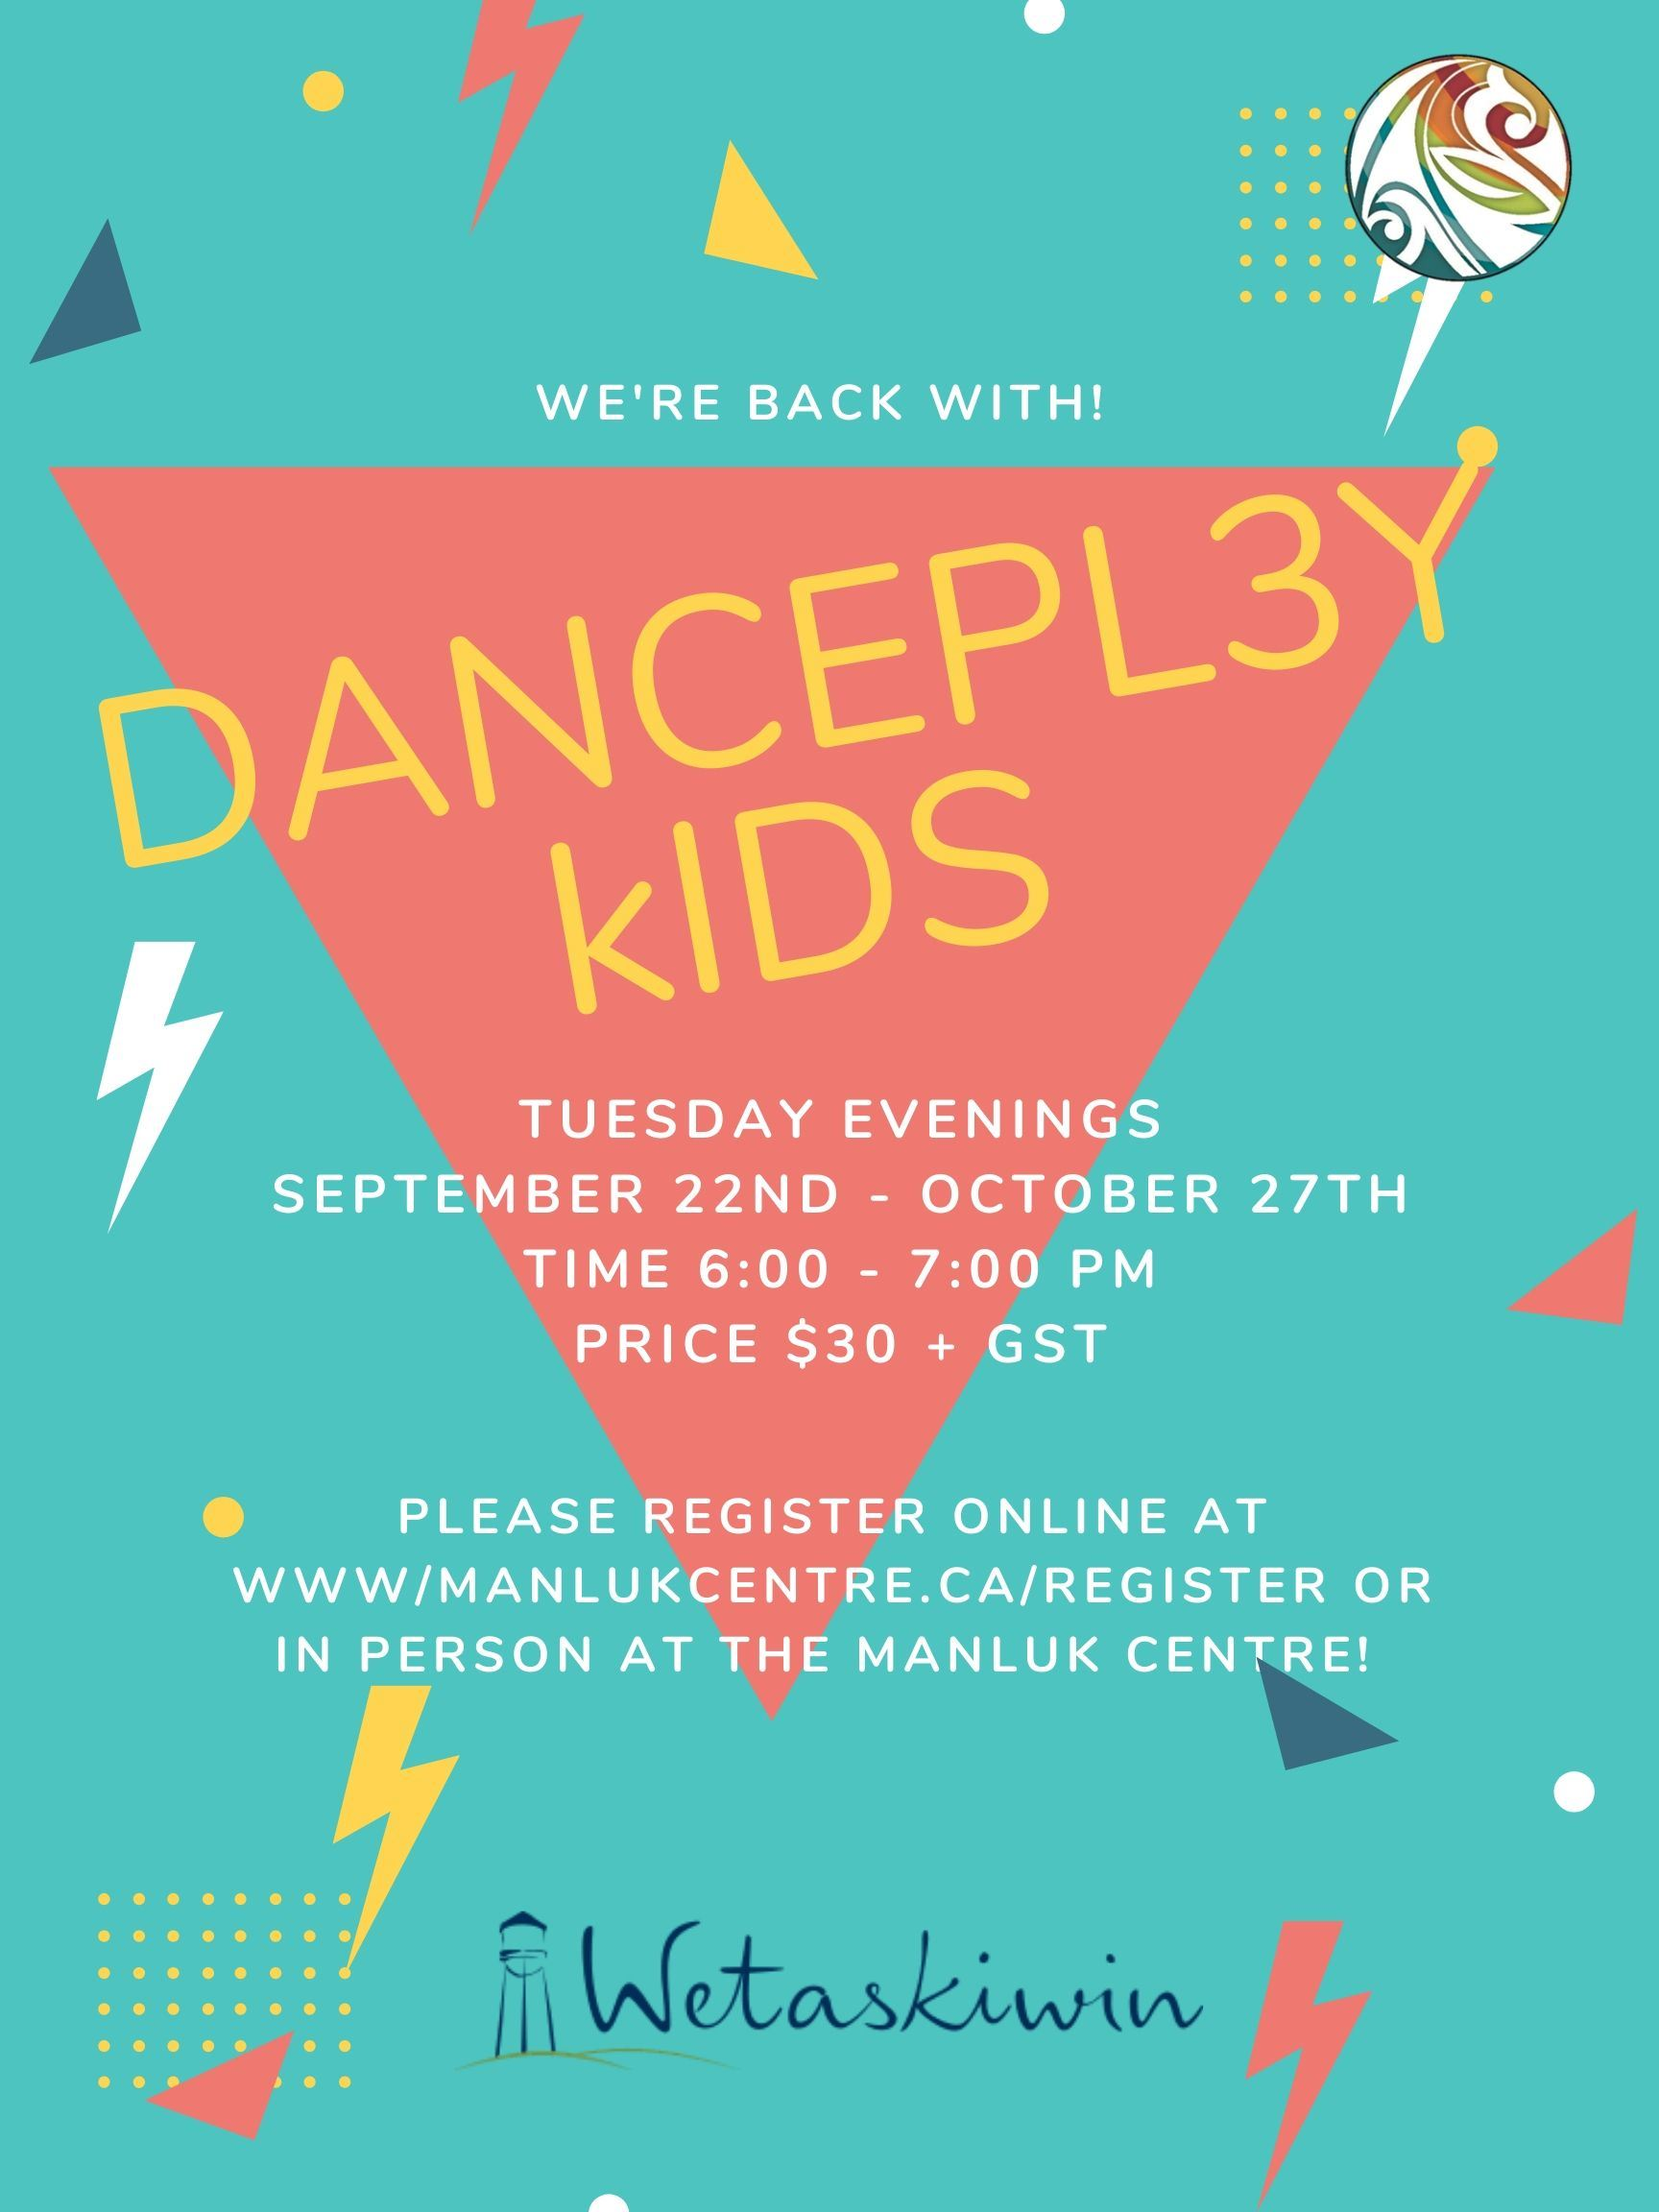 DANCEPL3Y Kids _ Sept. 22nd - Oct. 27th Fall 2020